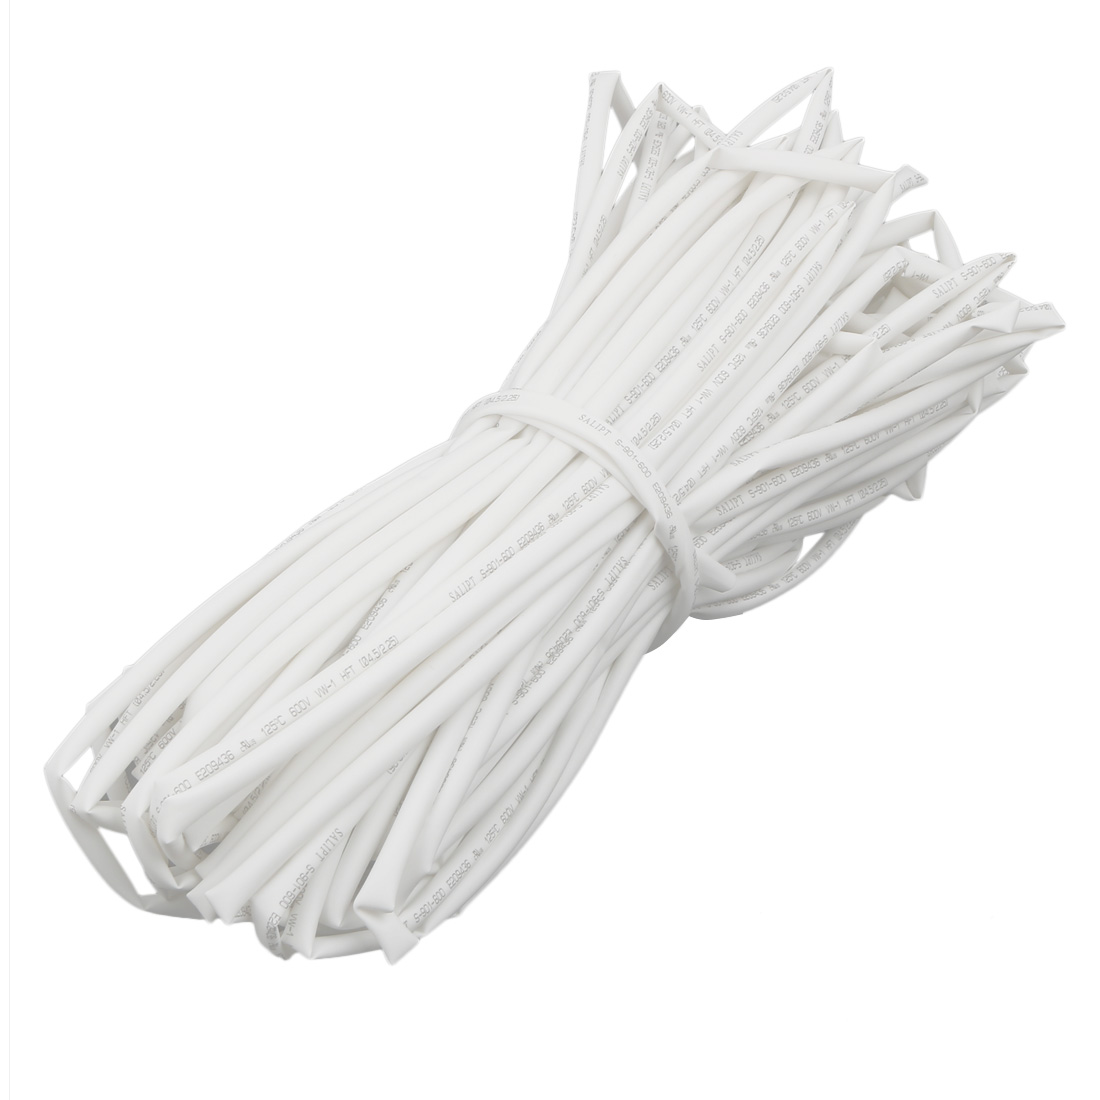 Polyolefin Heat Shrinkable Flame Retardant Tube 30M Long 4.5mm Inner Dia White